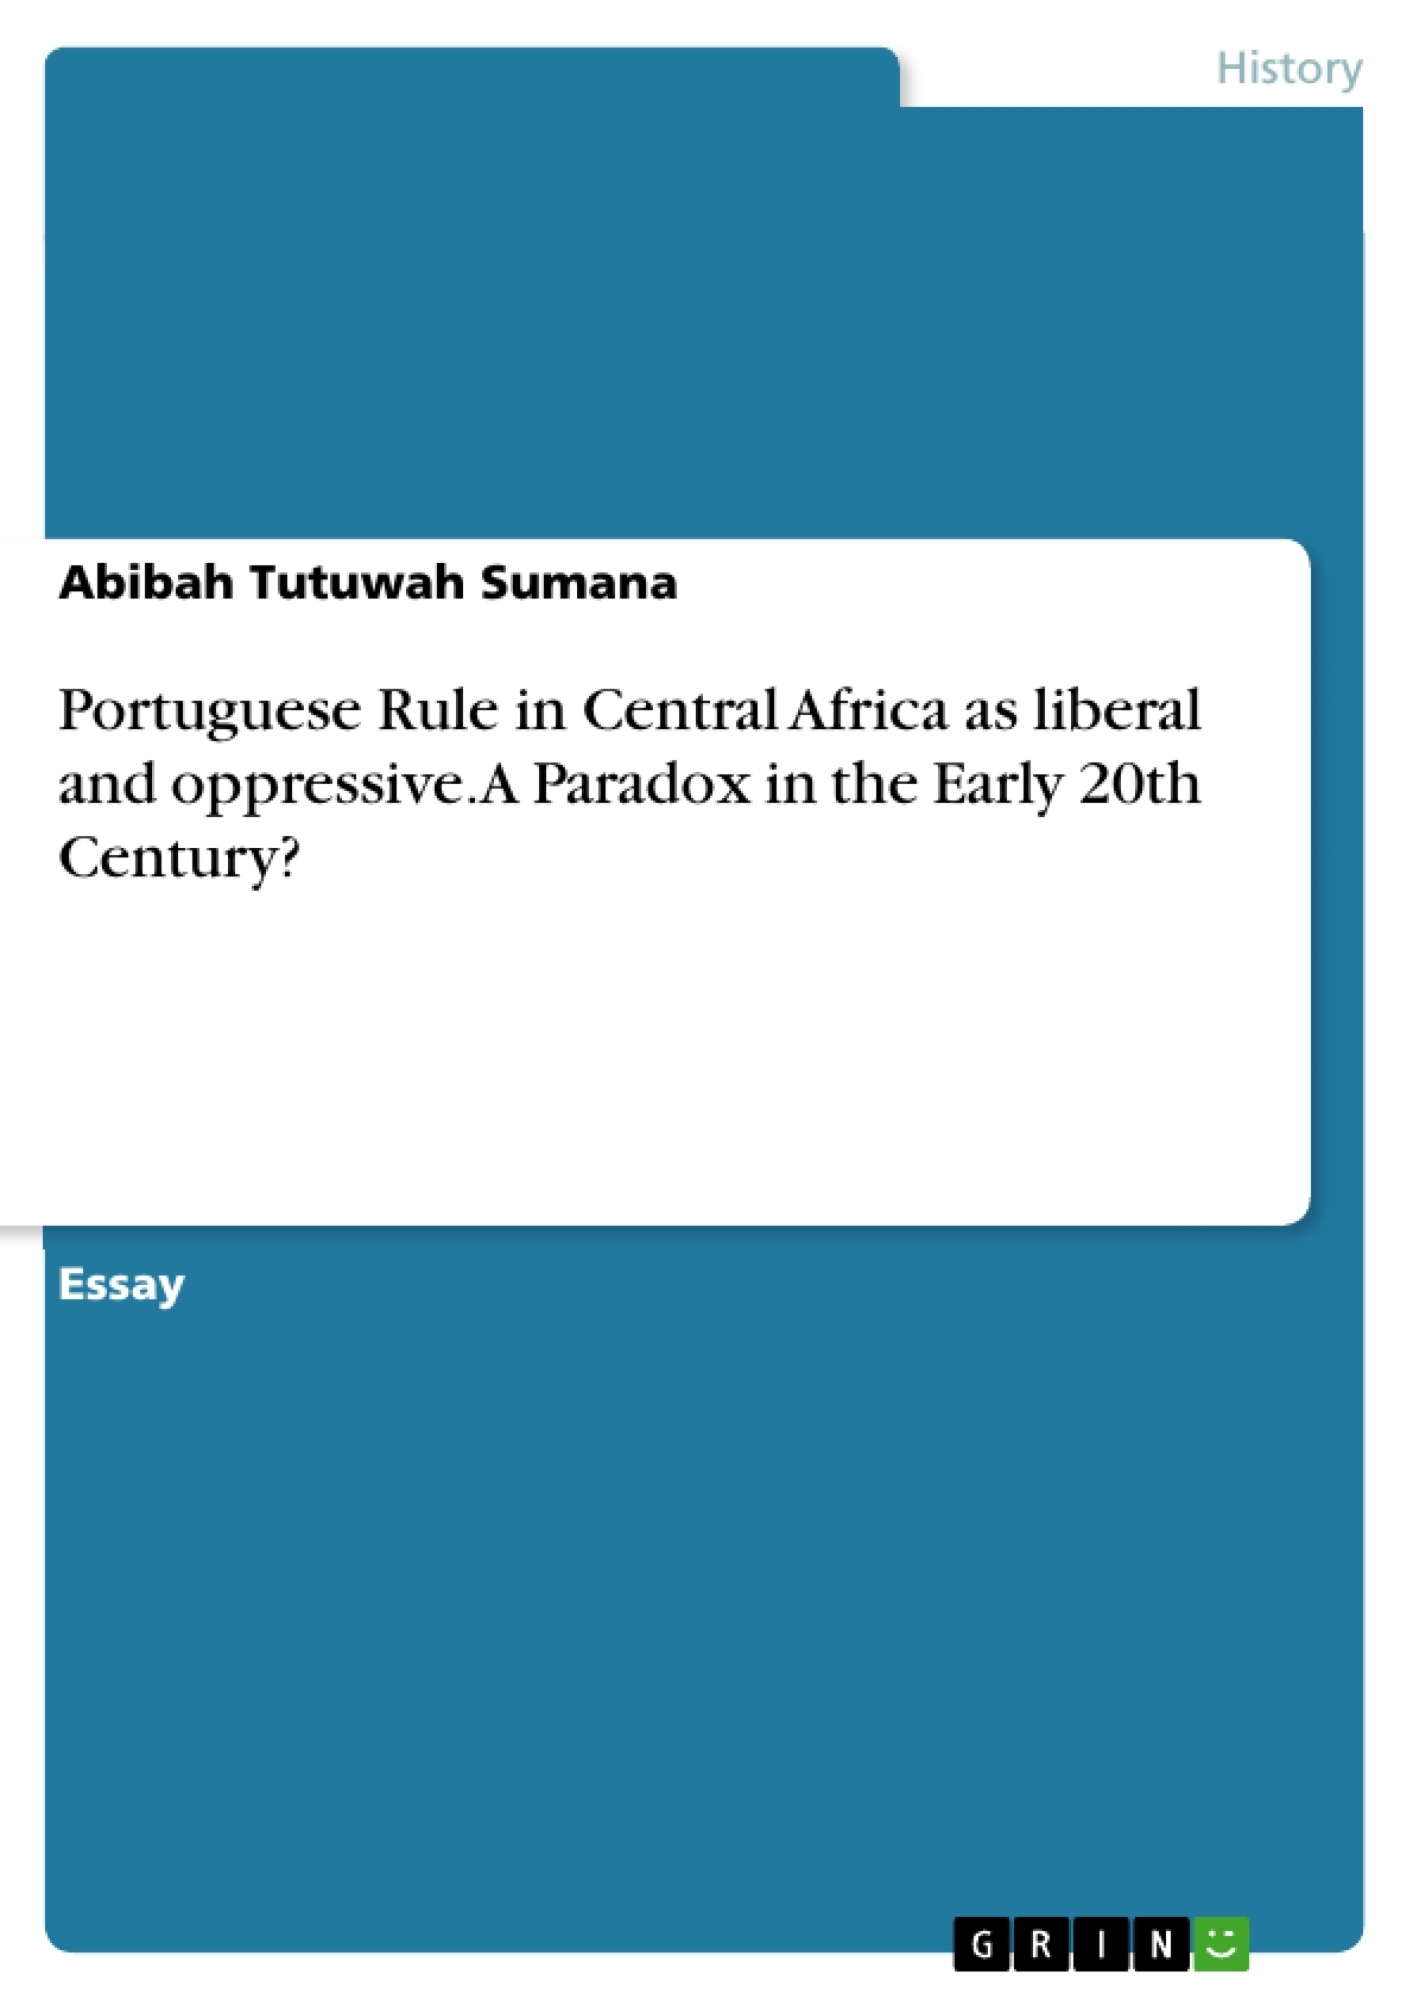 Title: Portuguese Rule in Central Africa as liberal and oppressive. A Paradox in the Early 20th Century?